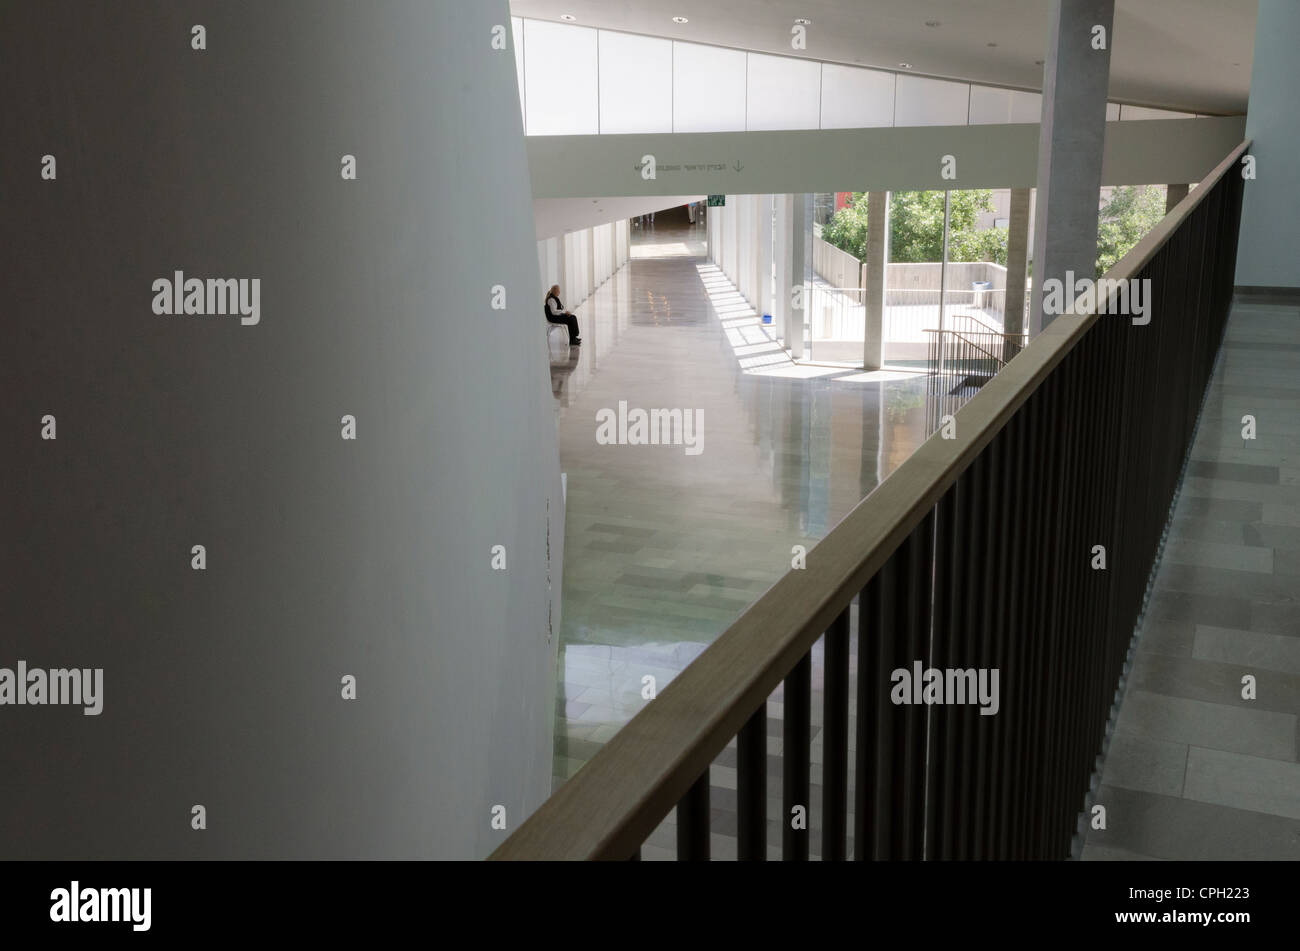 The interior of the new wing of theTel Aviv Museum of Art on May 8, 2012 in Tel Aviv, Israel. - Stock Image